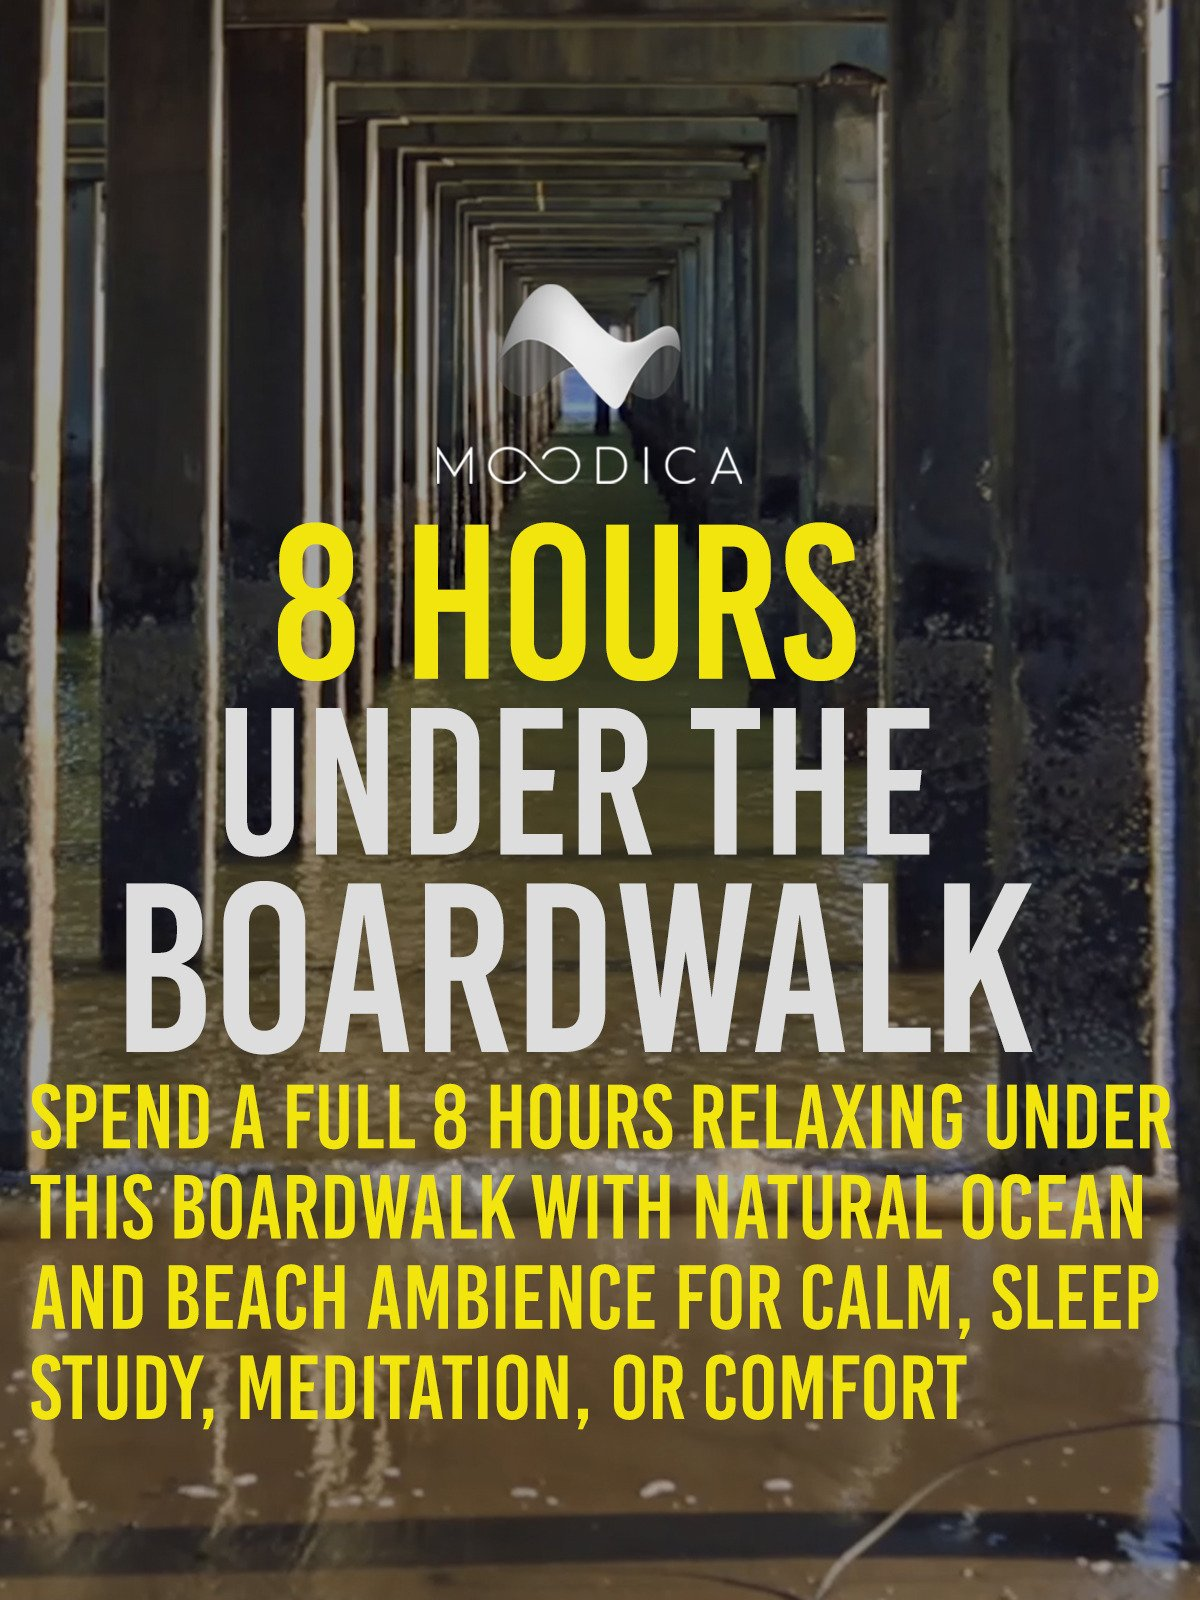 8 Hours: Under The Boardwalk: Spend A Full 8 Hours Relaxing Under This Boardwalk With Natural Ocean And Beach Ambience For Calm, Sleep, Study, Meditation, or Comfort